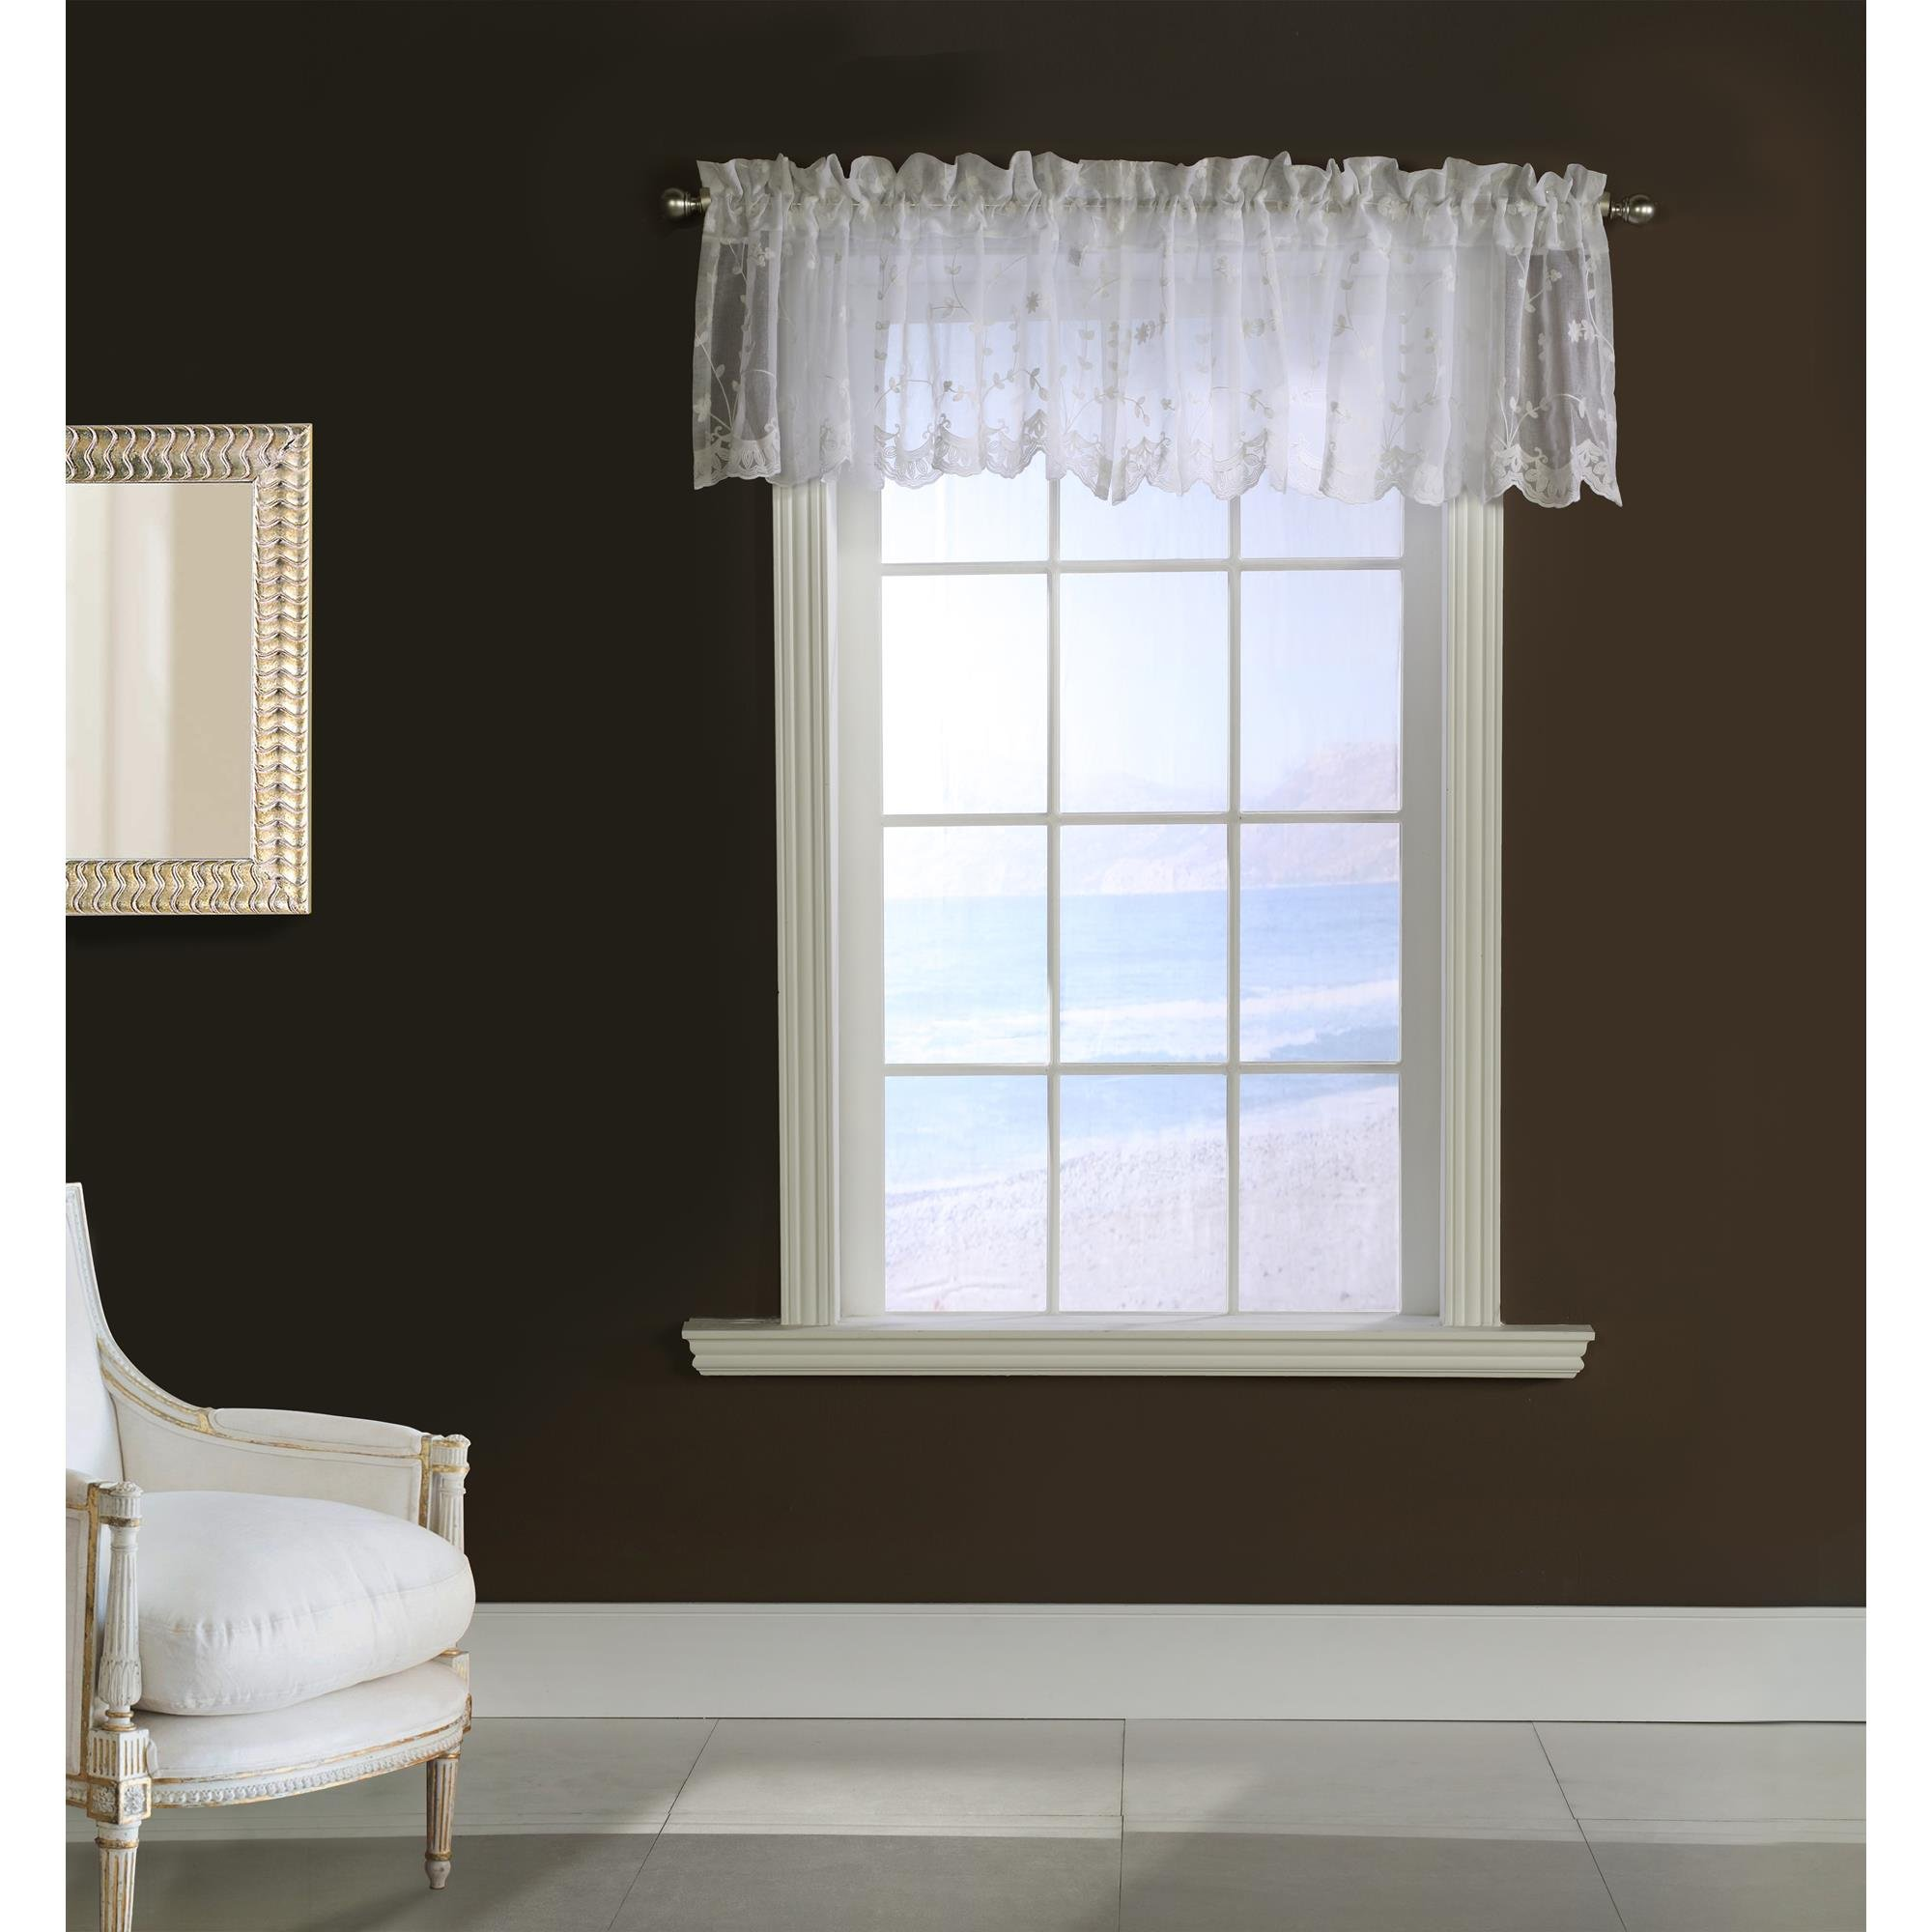 Commonwealth Grandeur 17'' Pole Top Valance in White